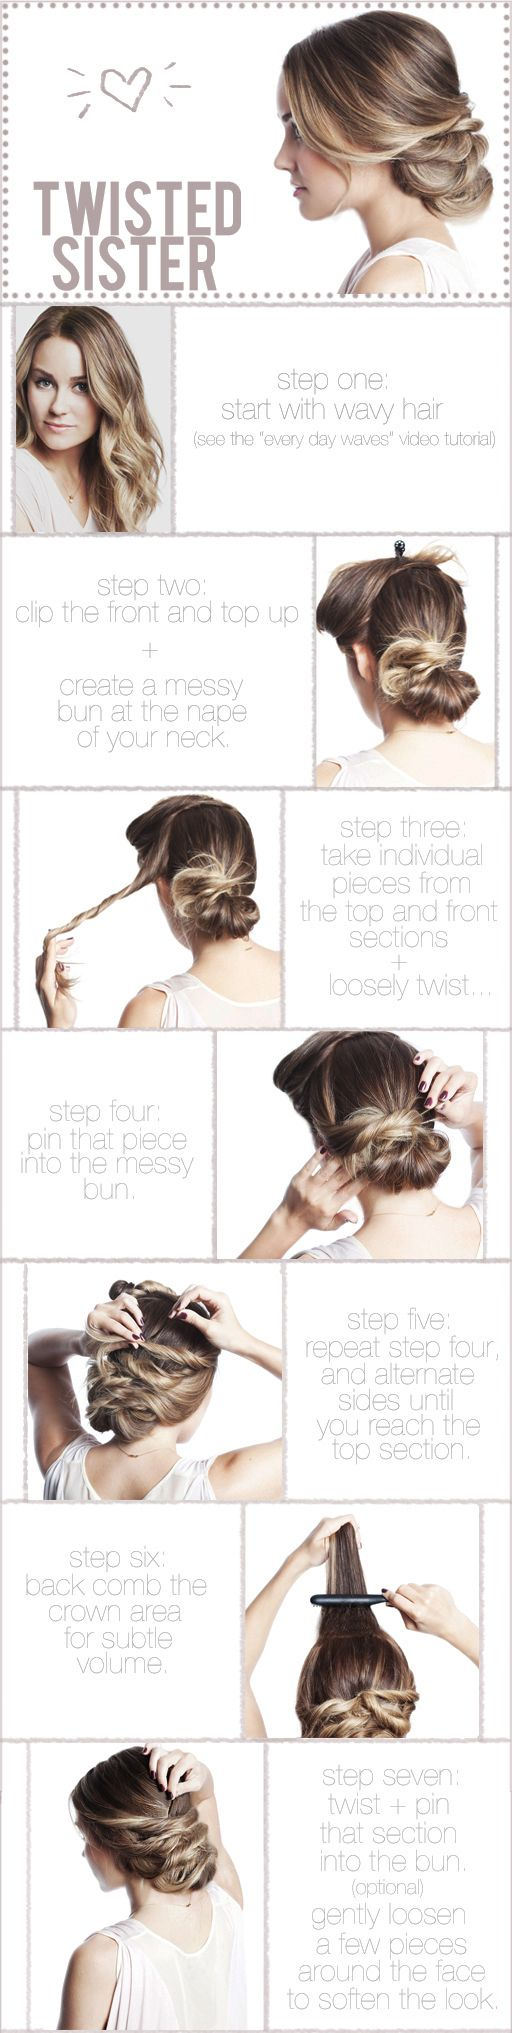 Pin it up girl updo teasing comb and hair style